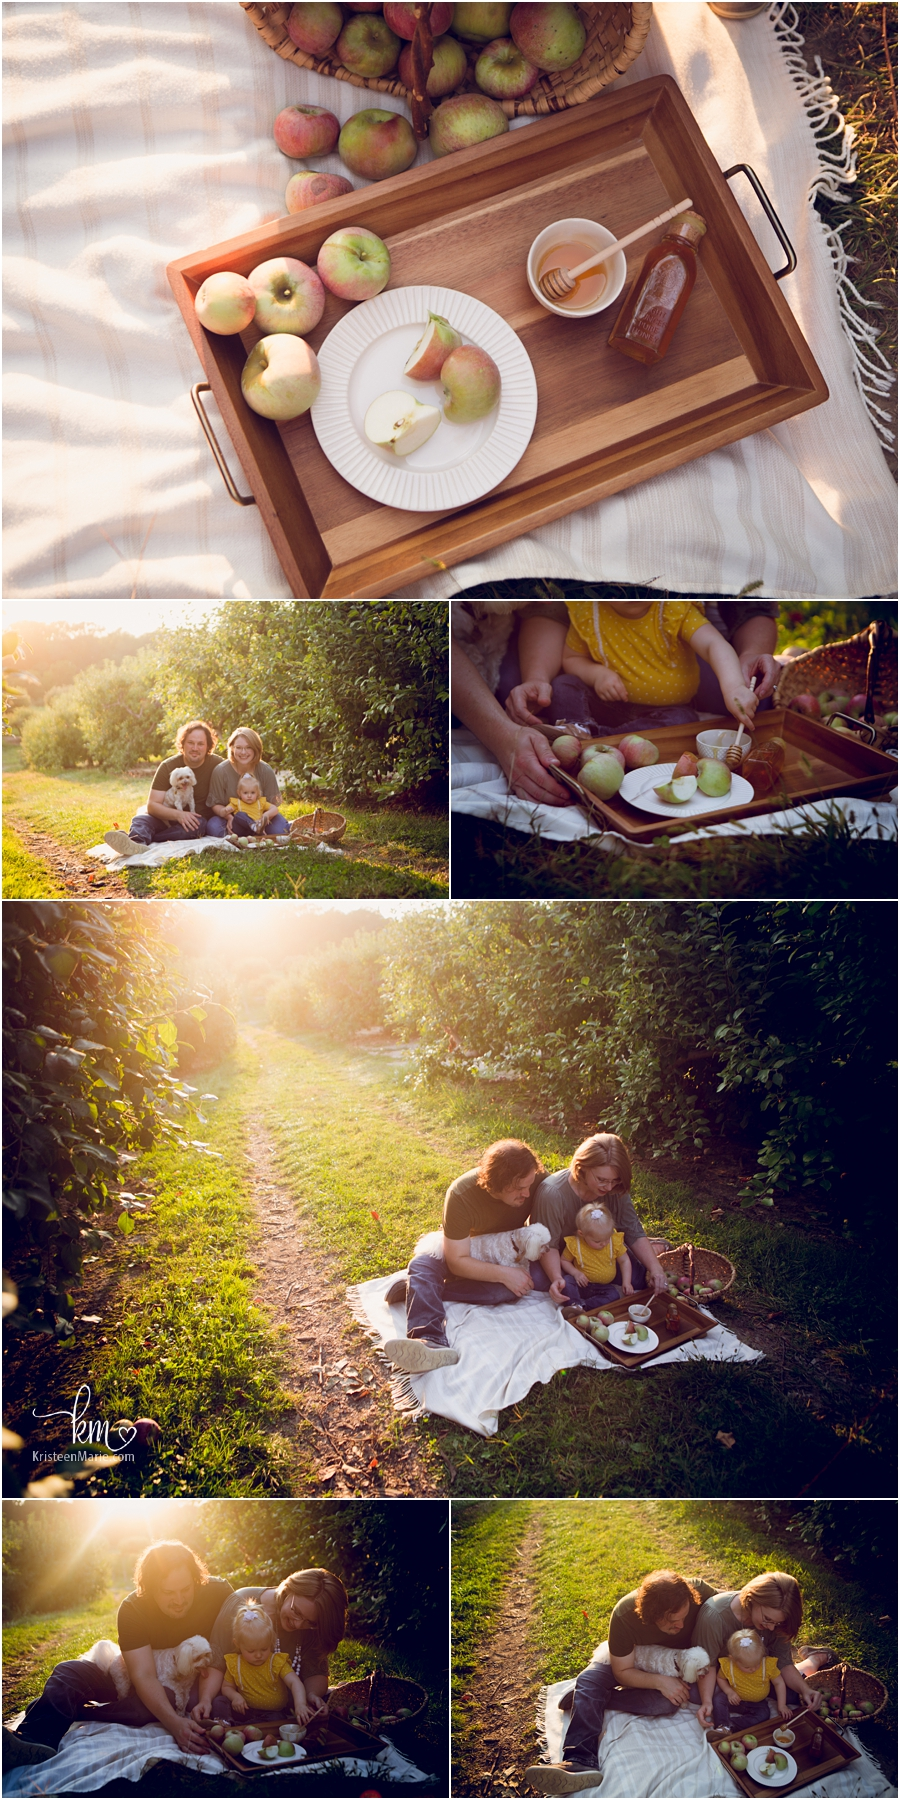 Rosh Hashanah themed family pictures - honey and apples